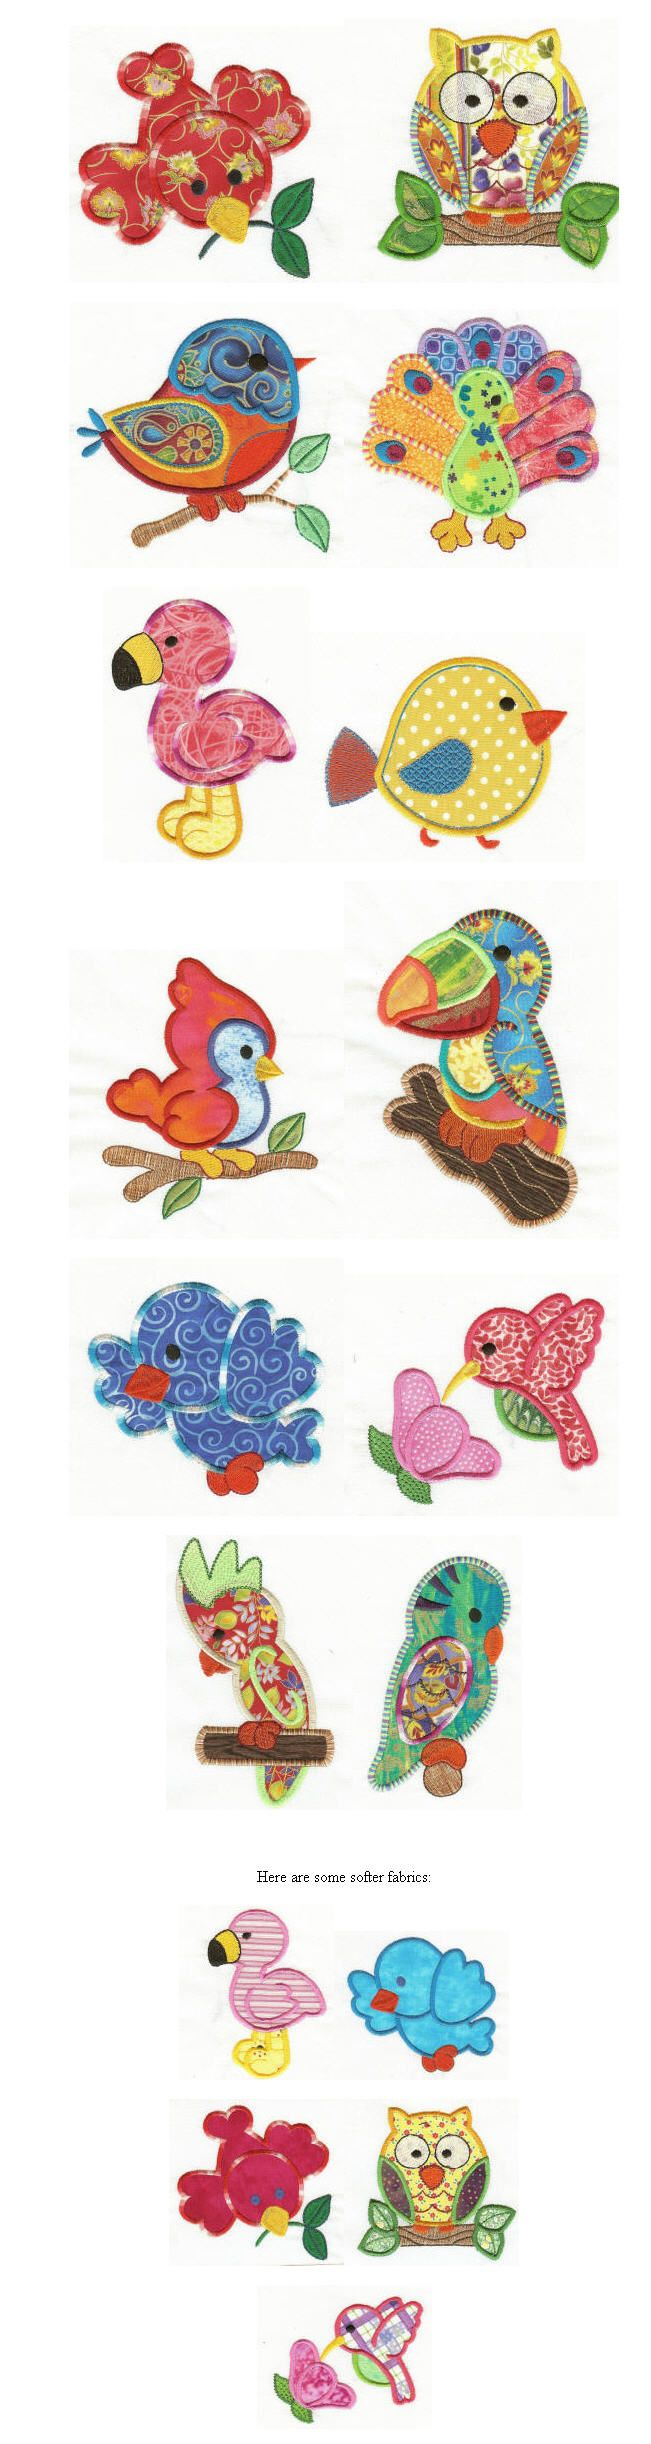 bordados o aplicar en tela  Embroidery | Free machine embroidery designs | Birds of a Feather Applique